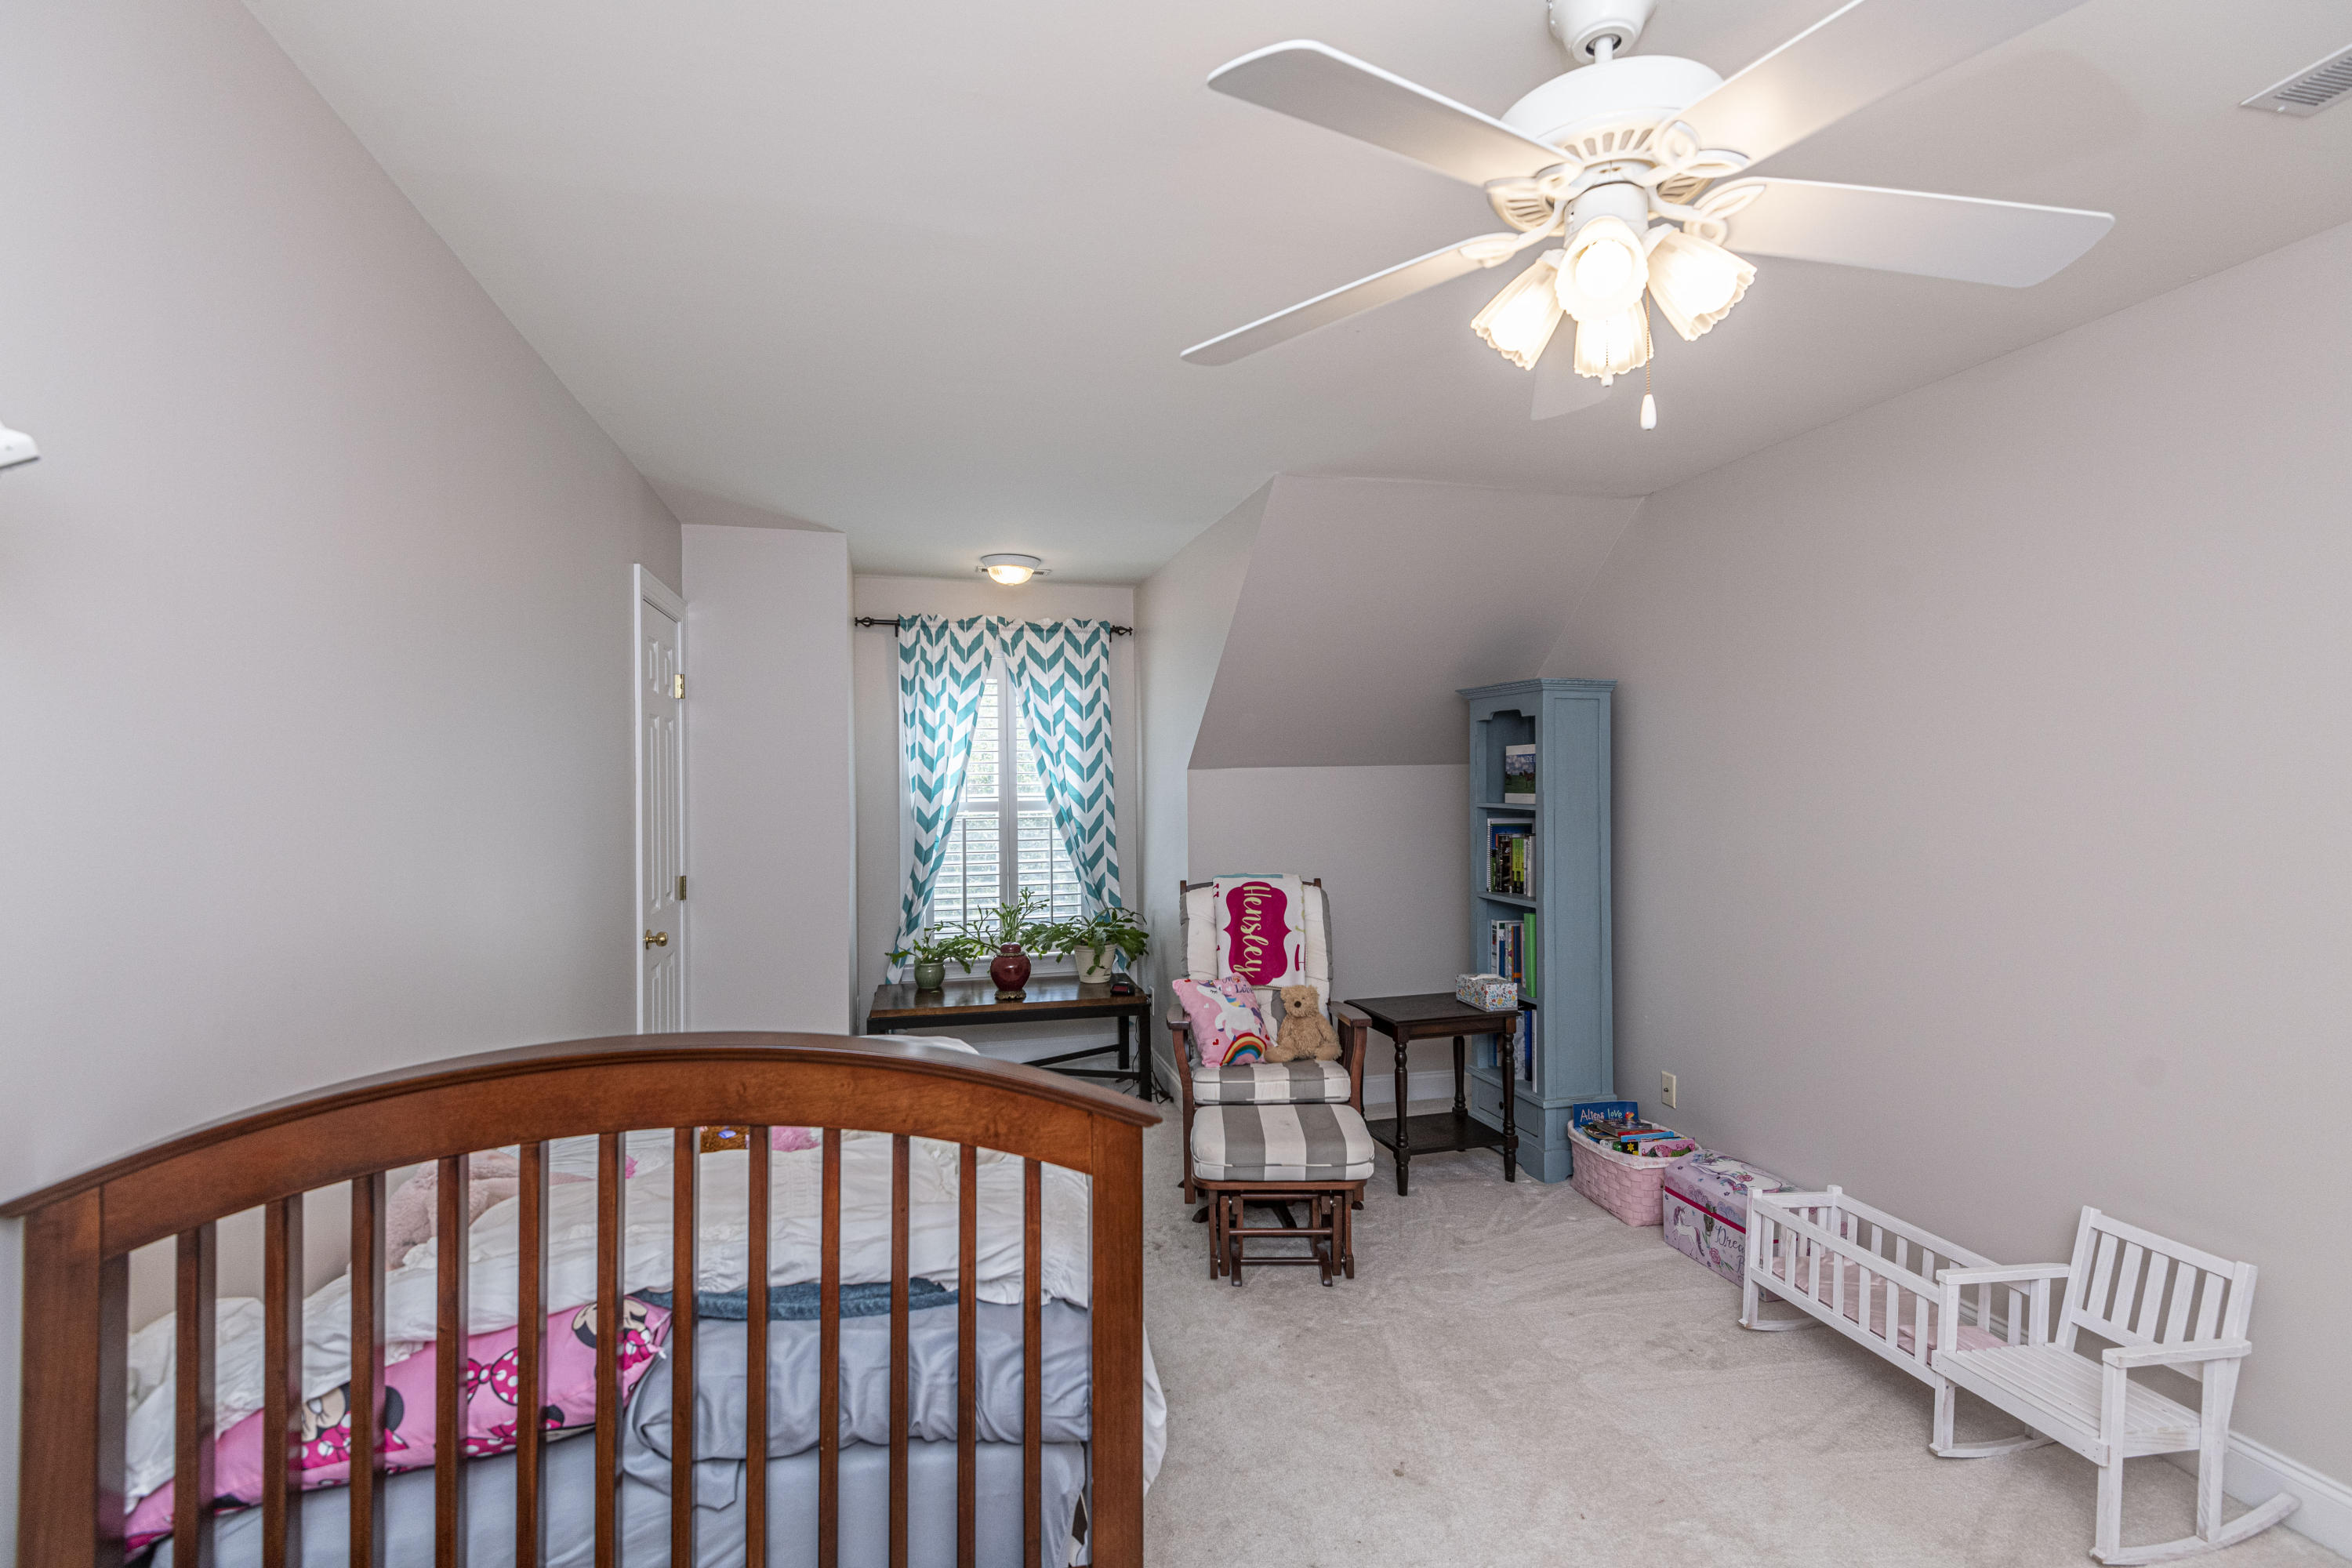 The Reserve at Wando East Homes For Sale - 1681 Lauda, Mount Pleasant, SC - 2